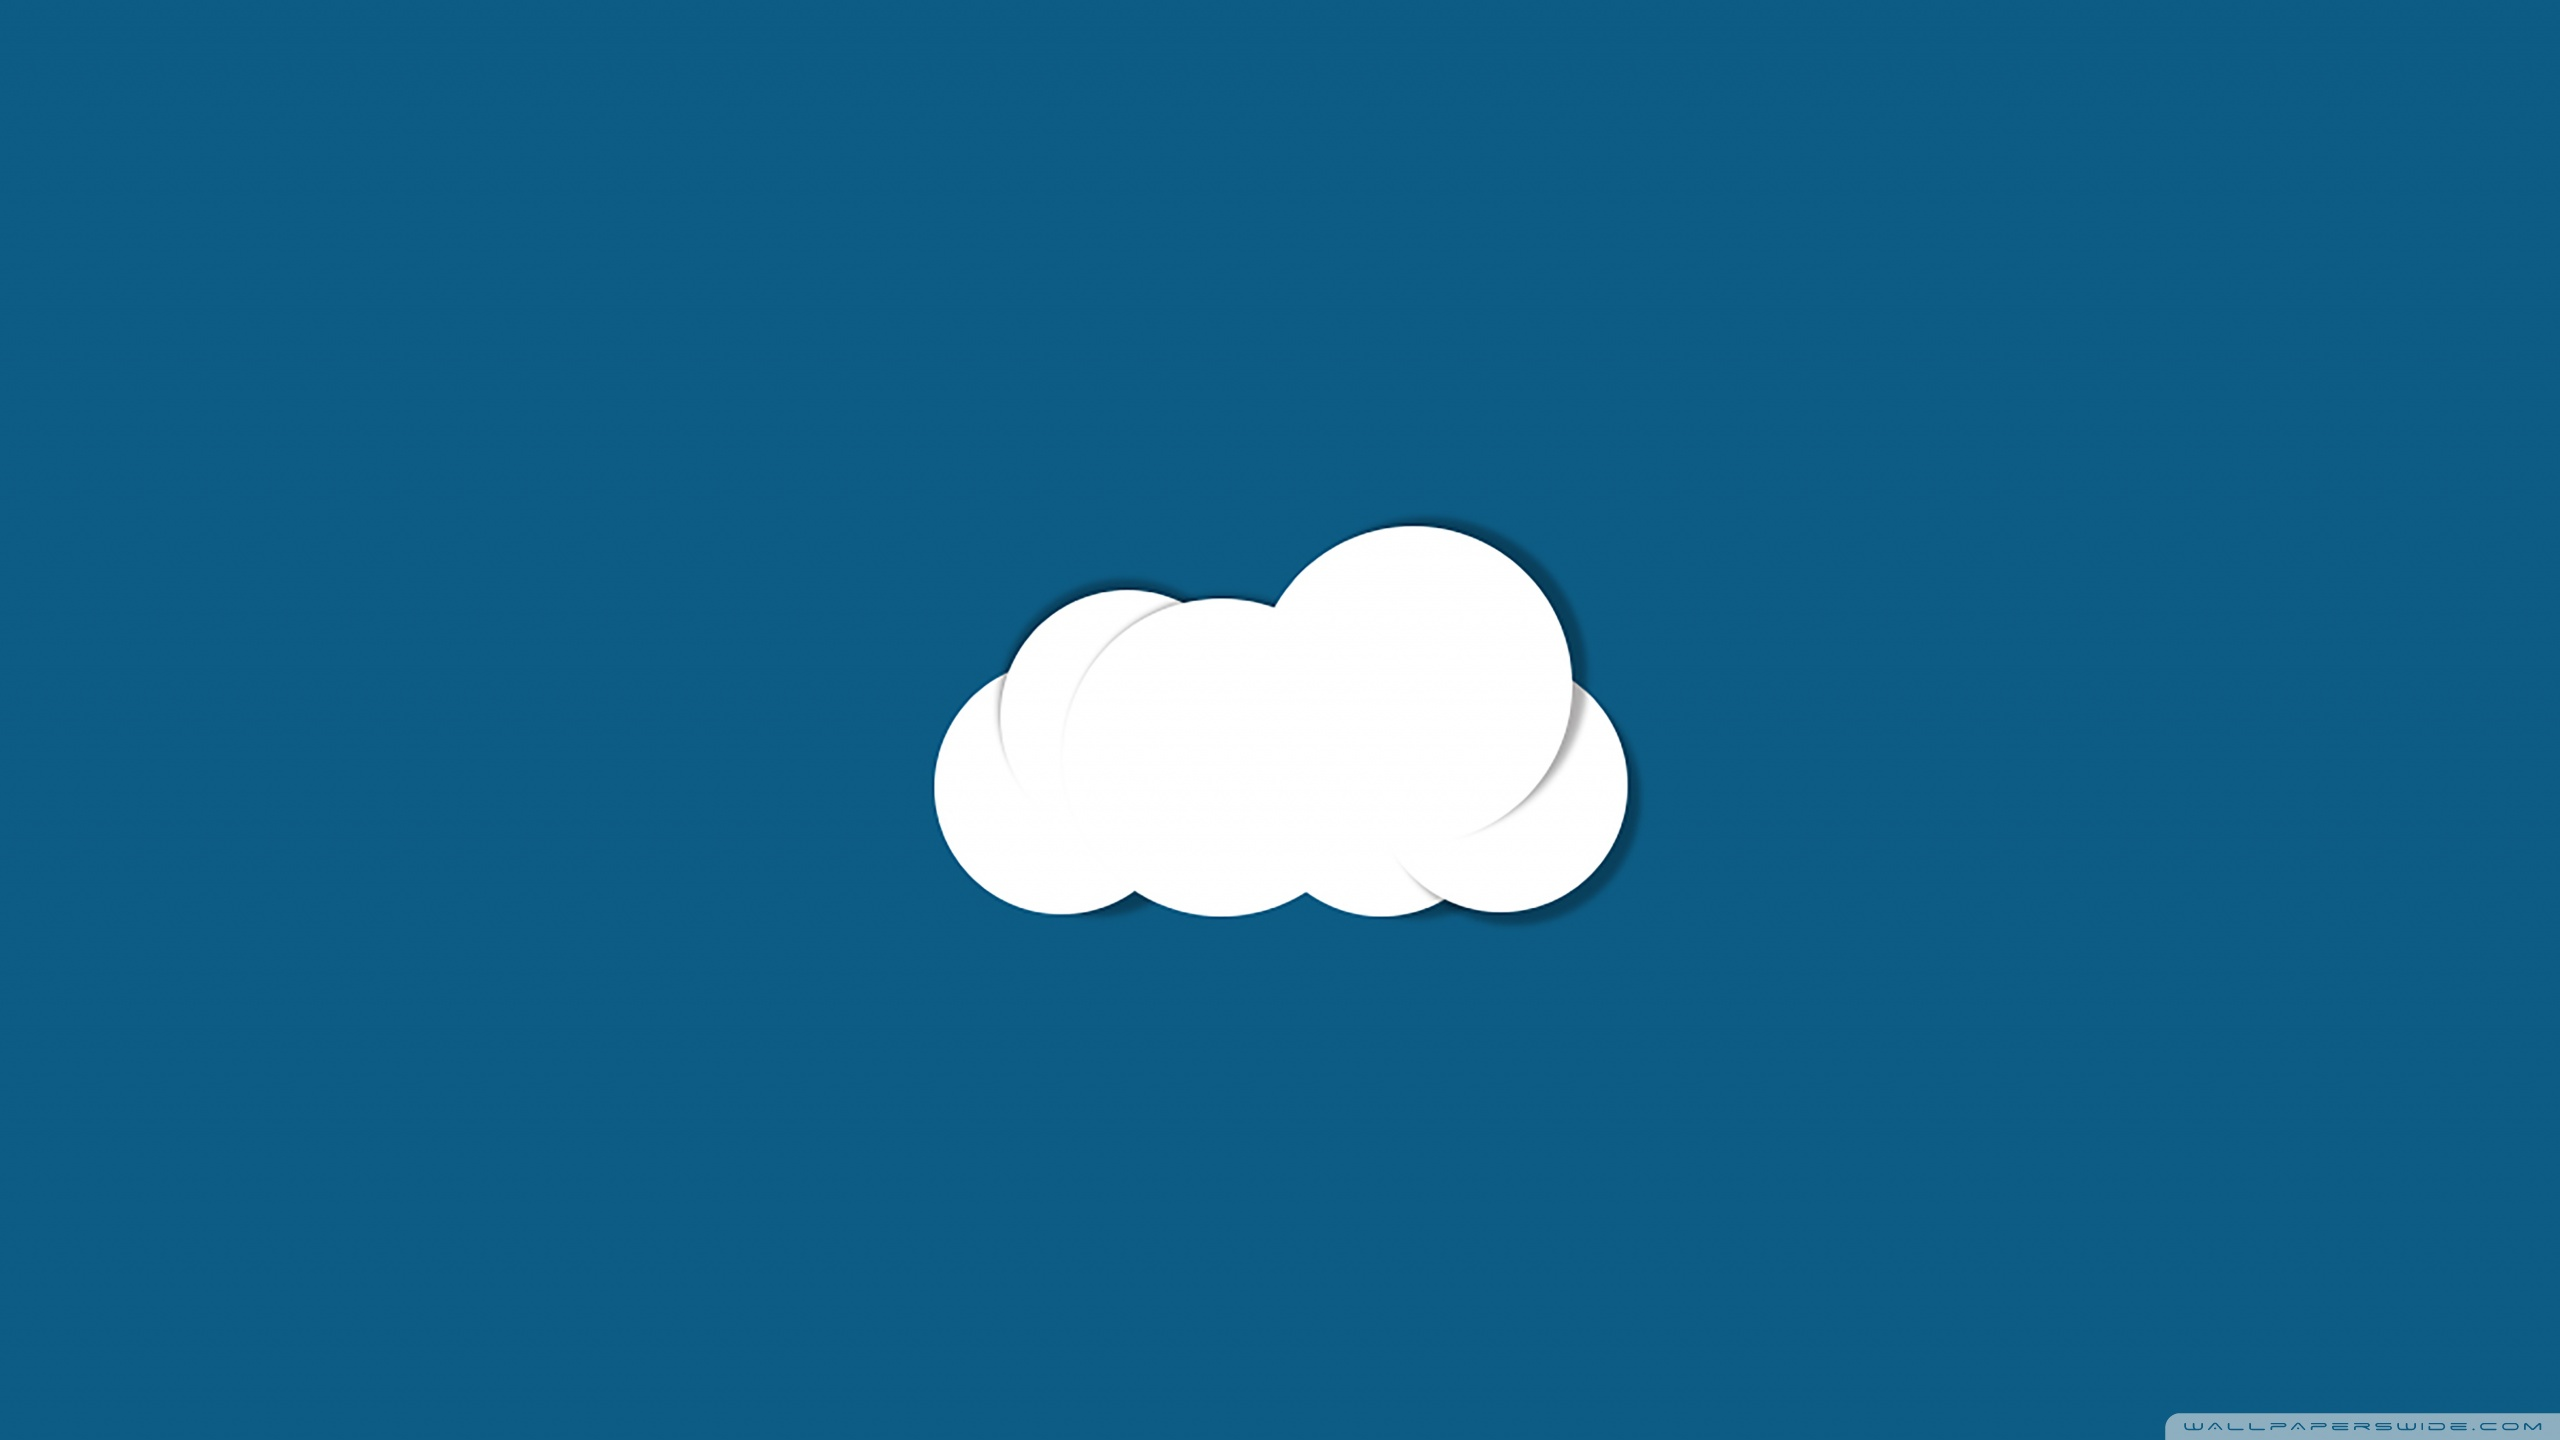 Minimal Cloud  ¤ 4k Hd Desktop Wallpaper For 4k Ultra - 4k Minimalist Wallpaper Desktop , HD Wallpaper & Backgrounds